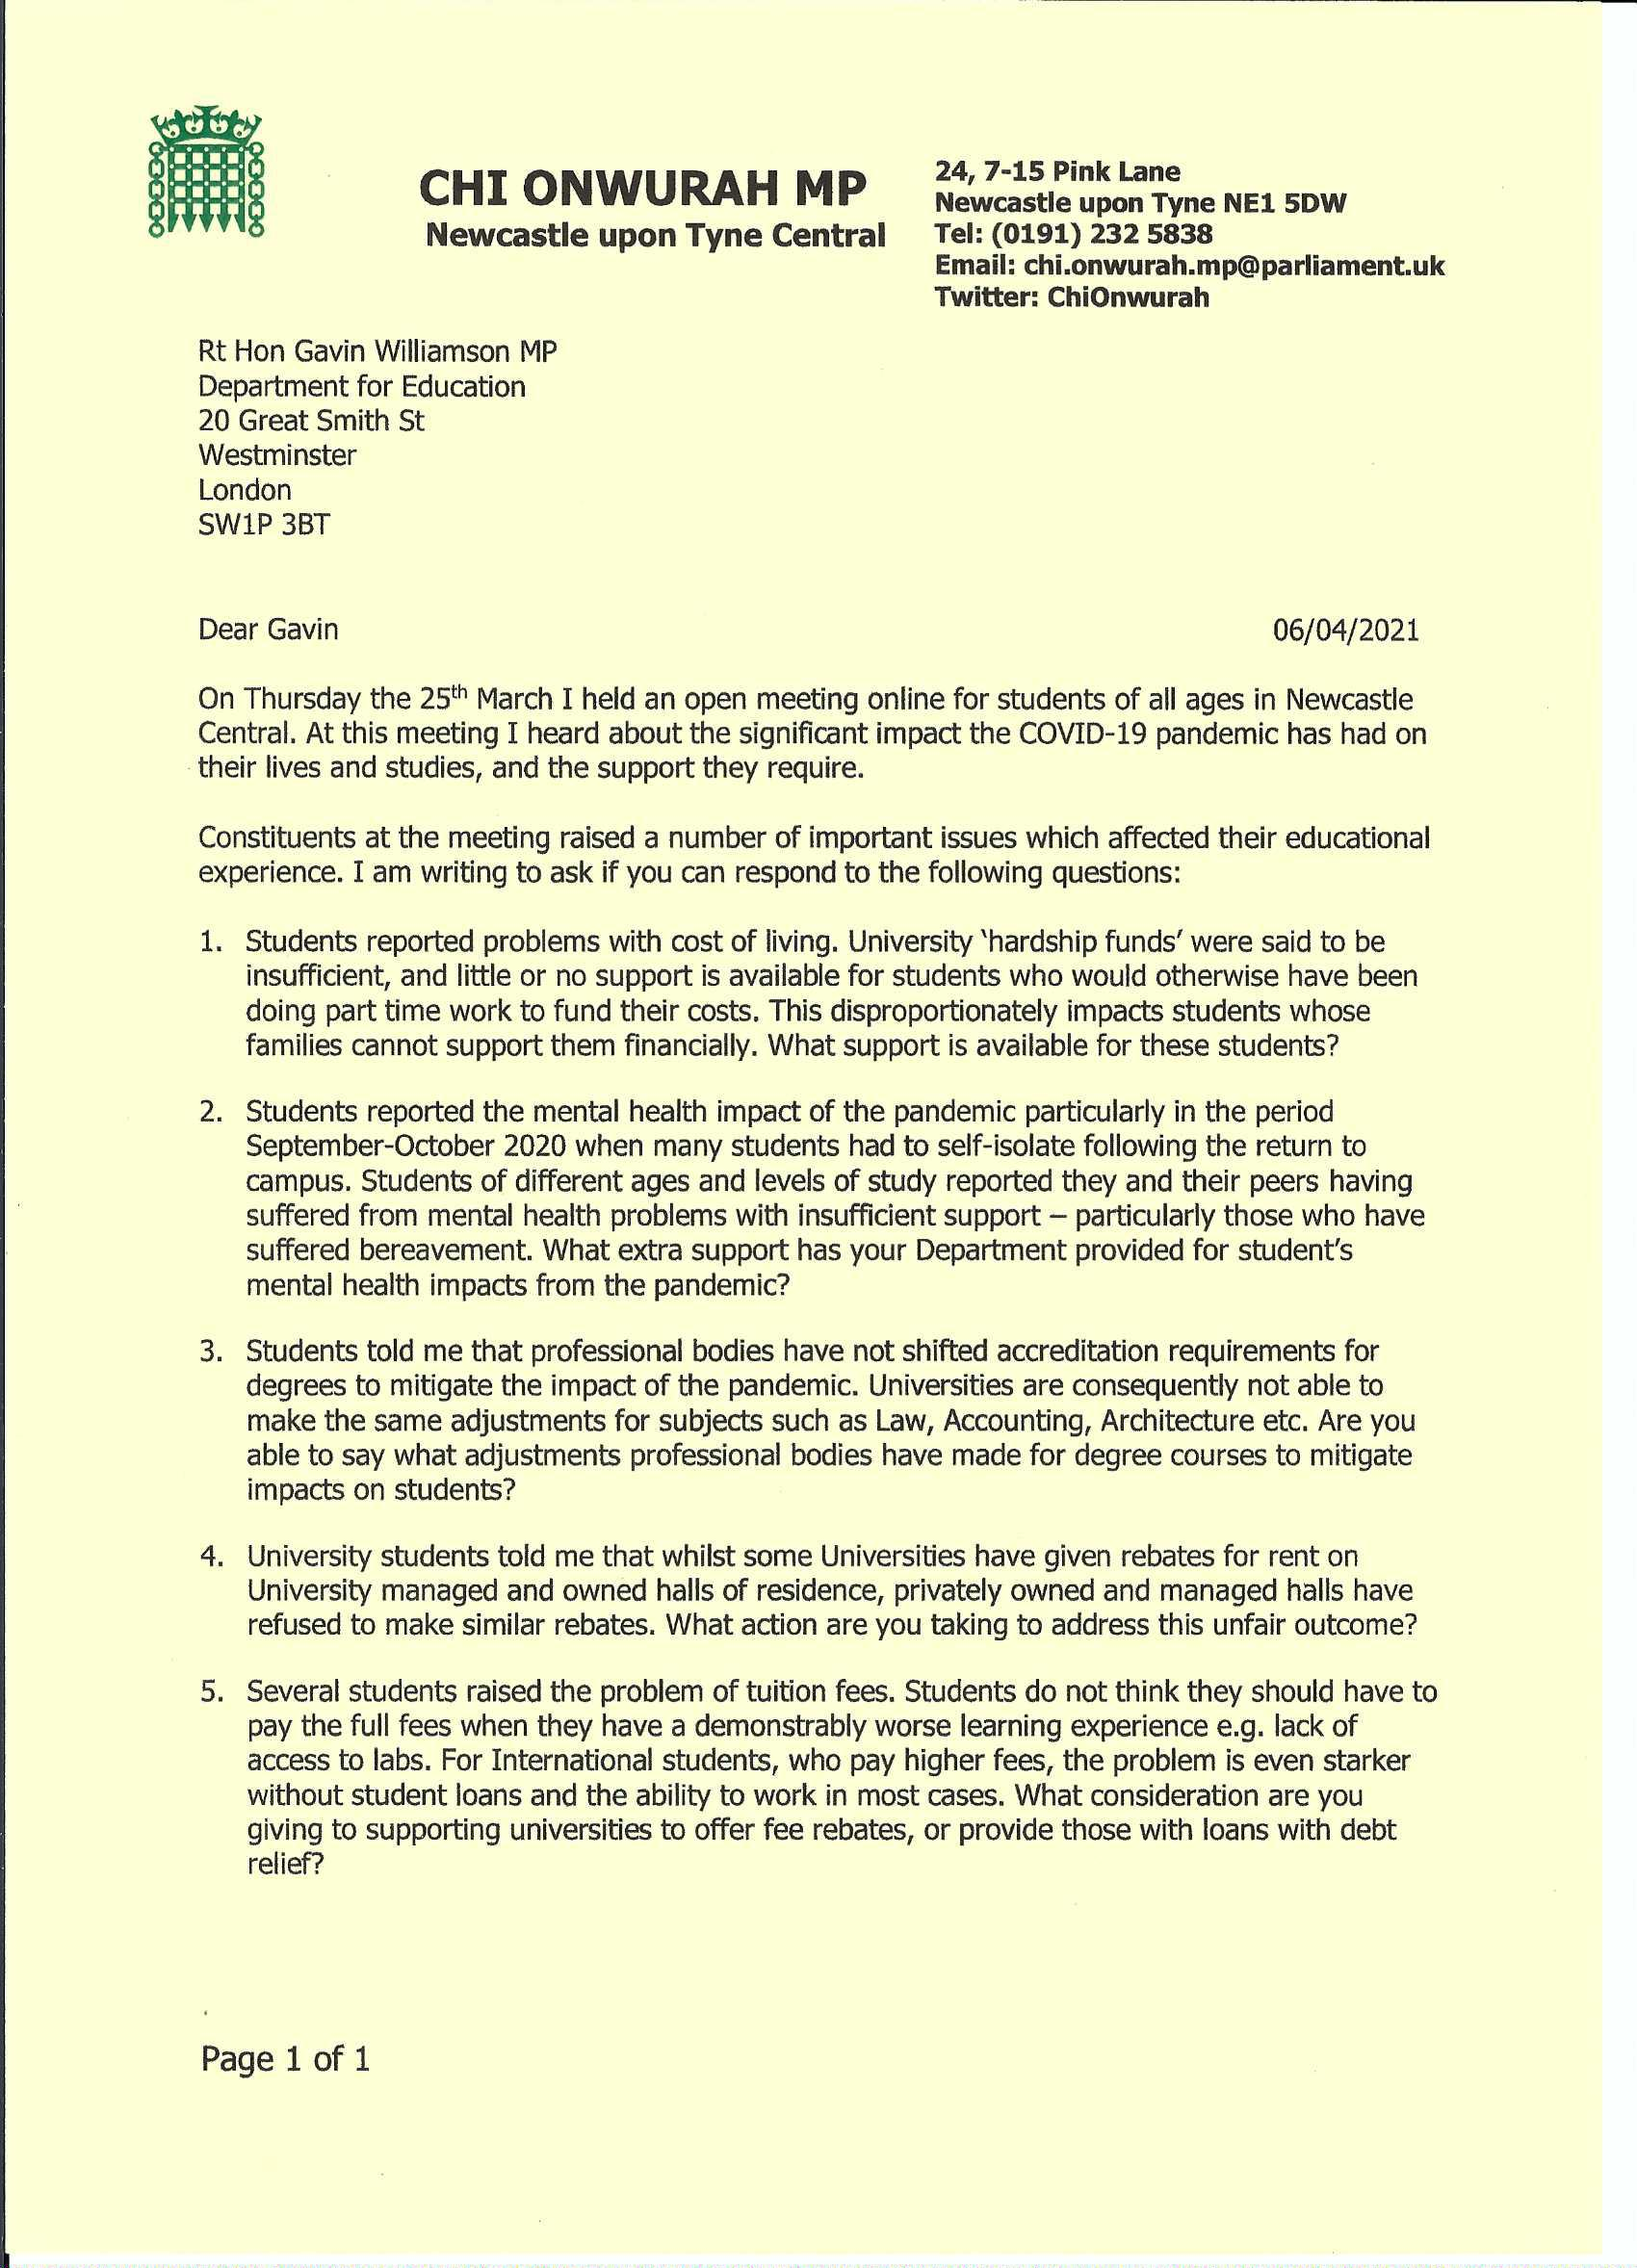 Letter to Gavin Williamson Secretary of State for Education taking up issues after an open online meeting with students